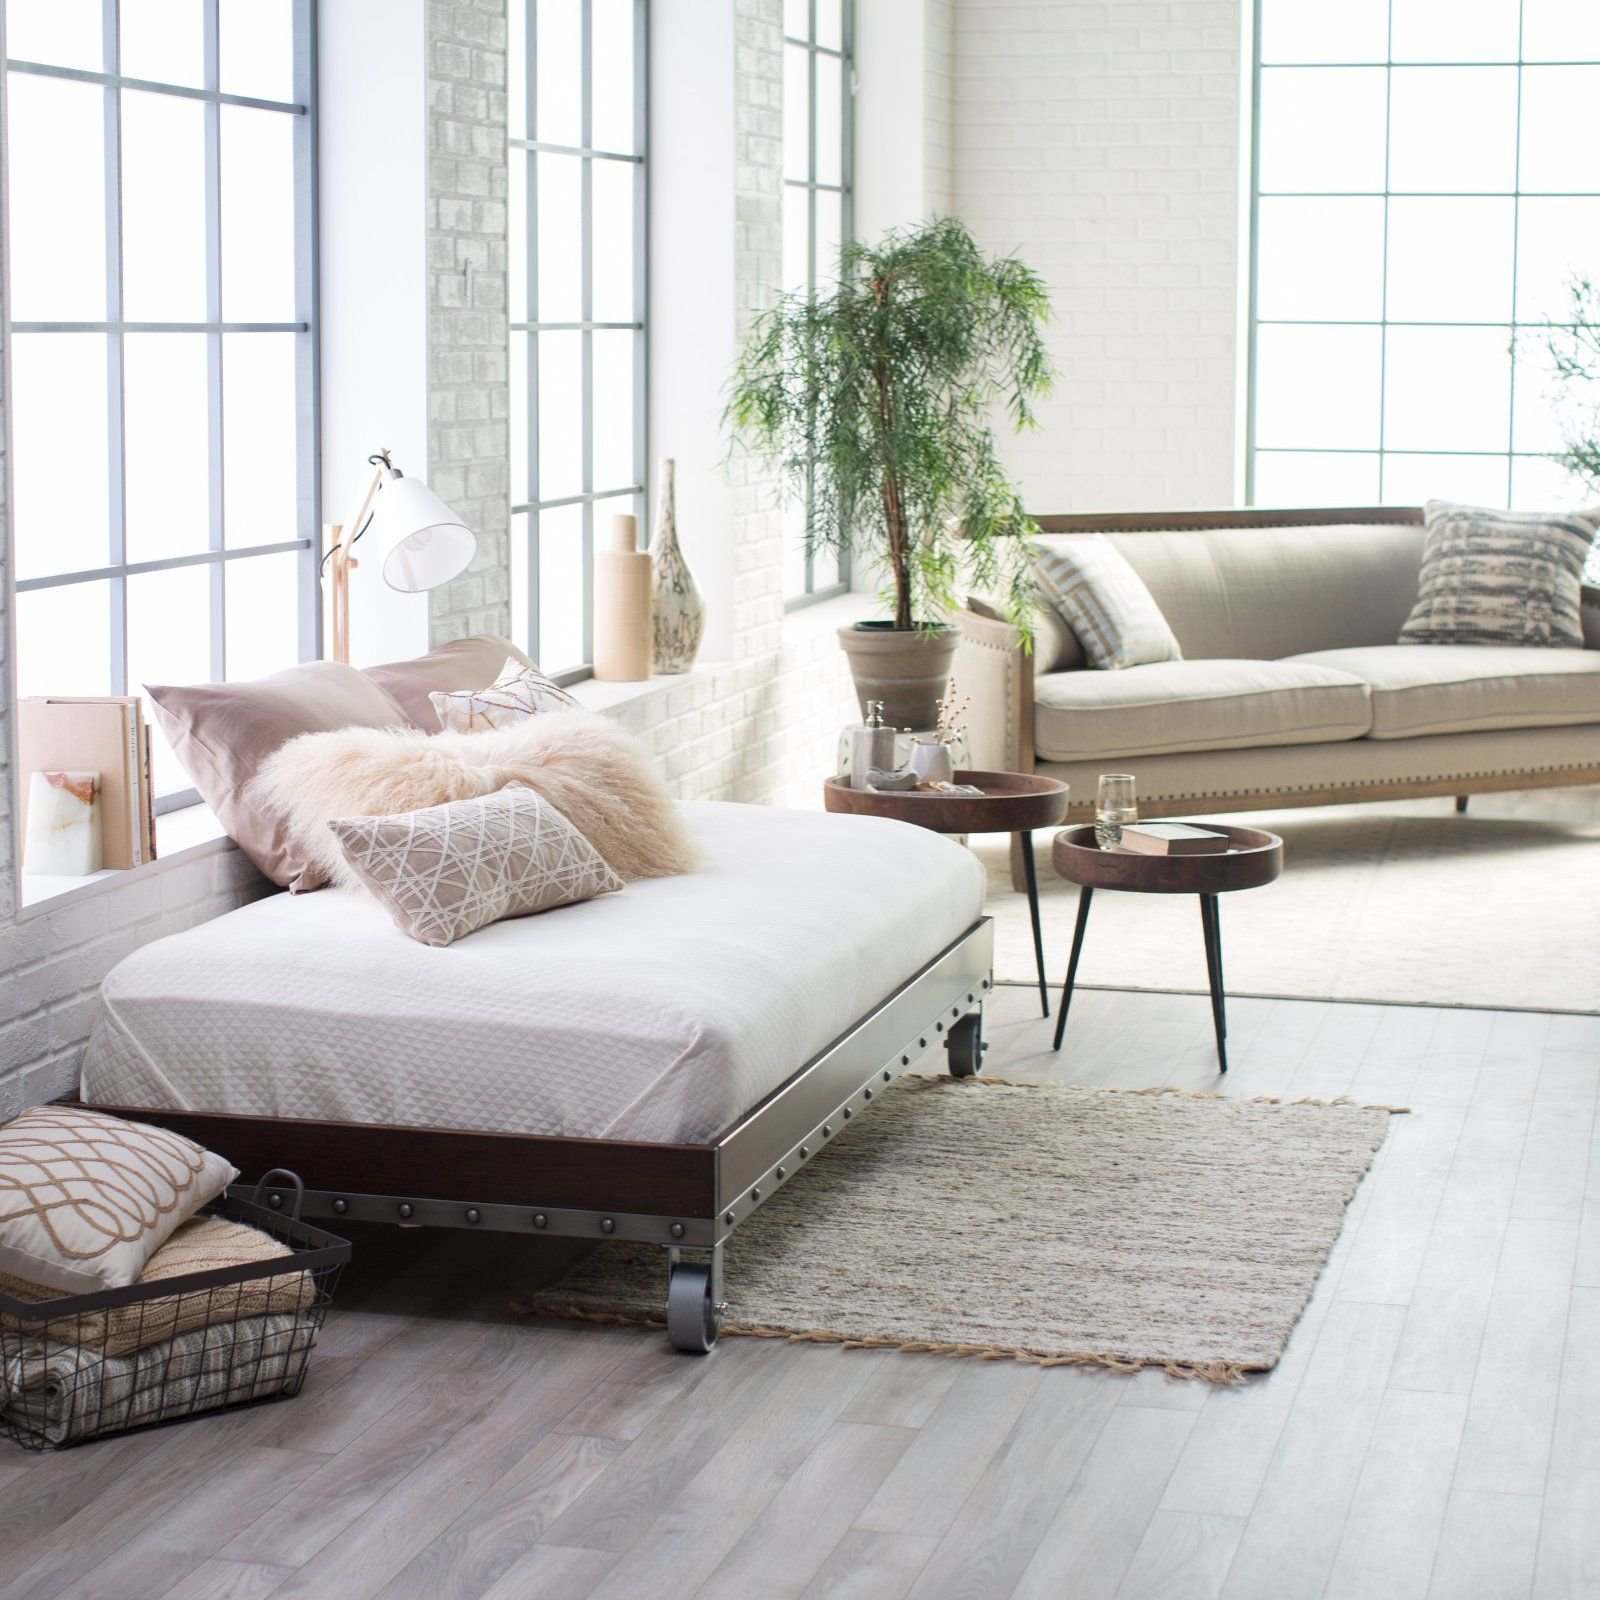 Home Daybed design, Bed furniture, Daybed